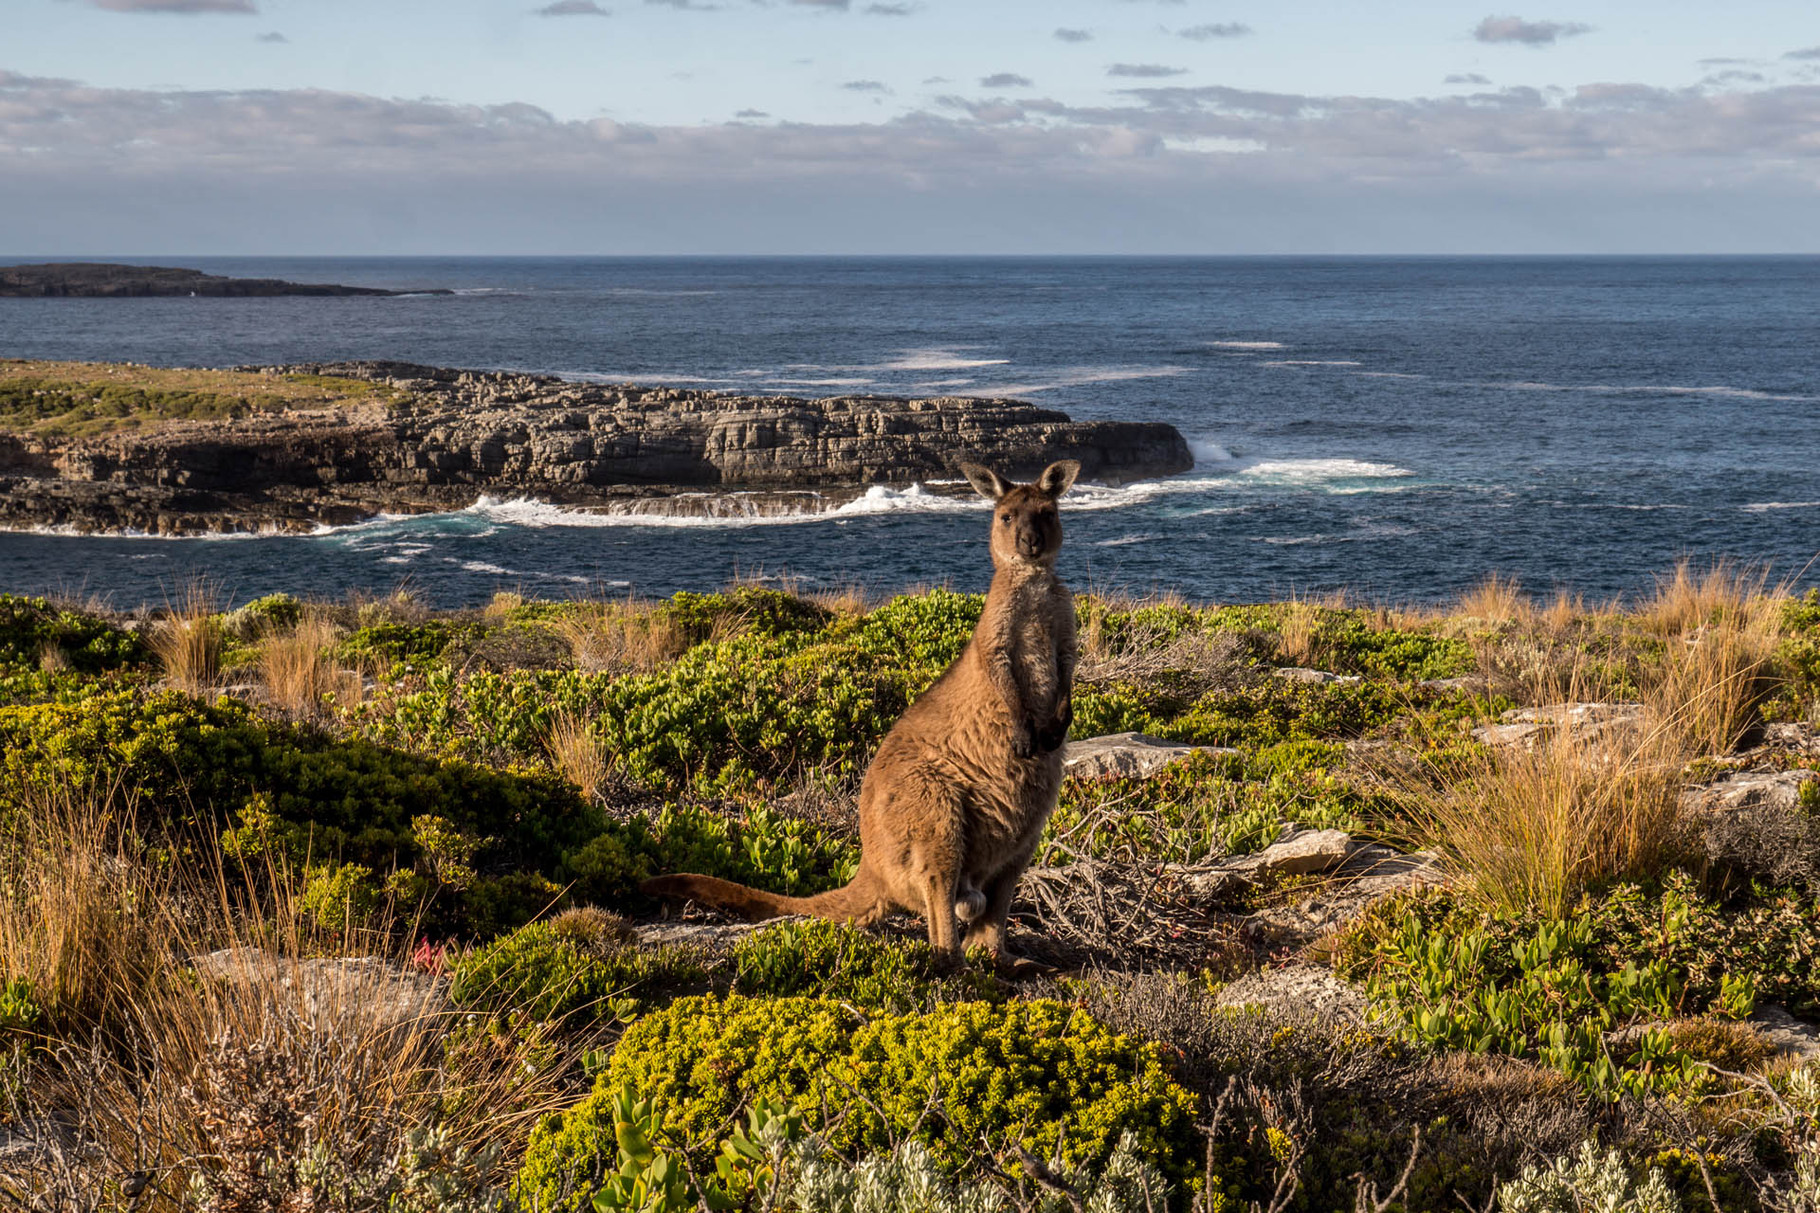 Kangaroo near Admiral Arch (Casuarina Islet in the background), Flinders Chase National Park, Kangaroo Island